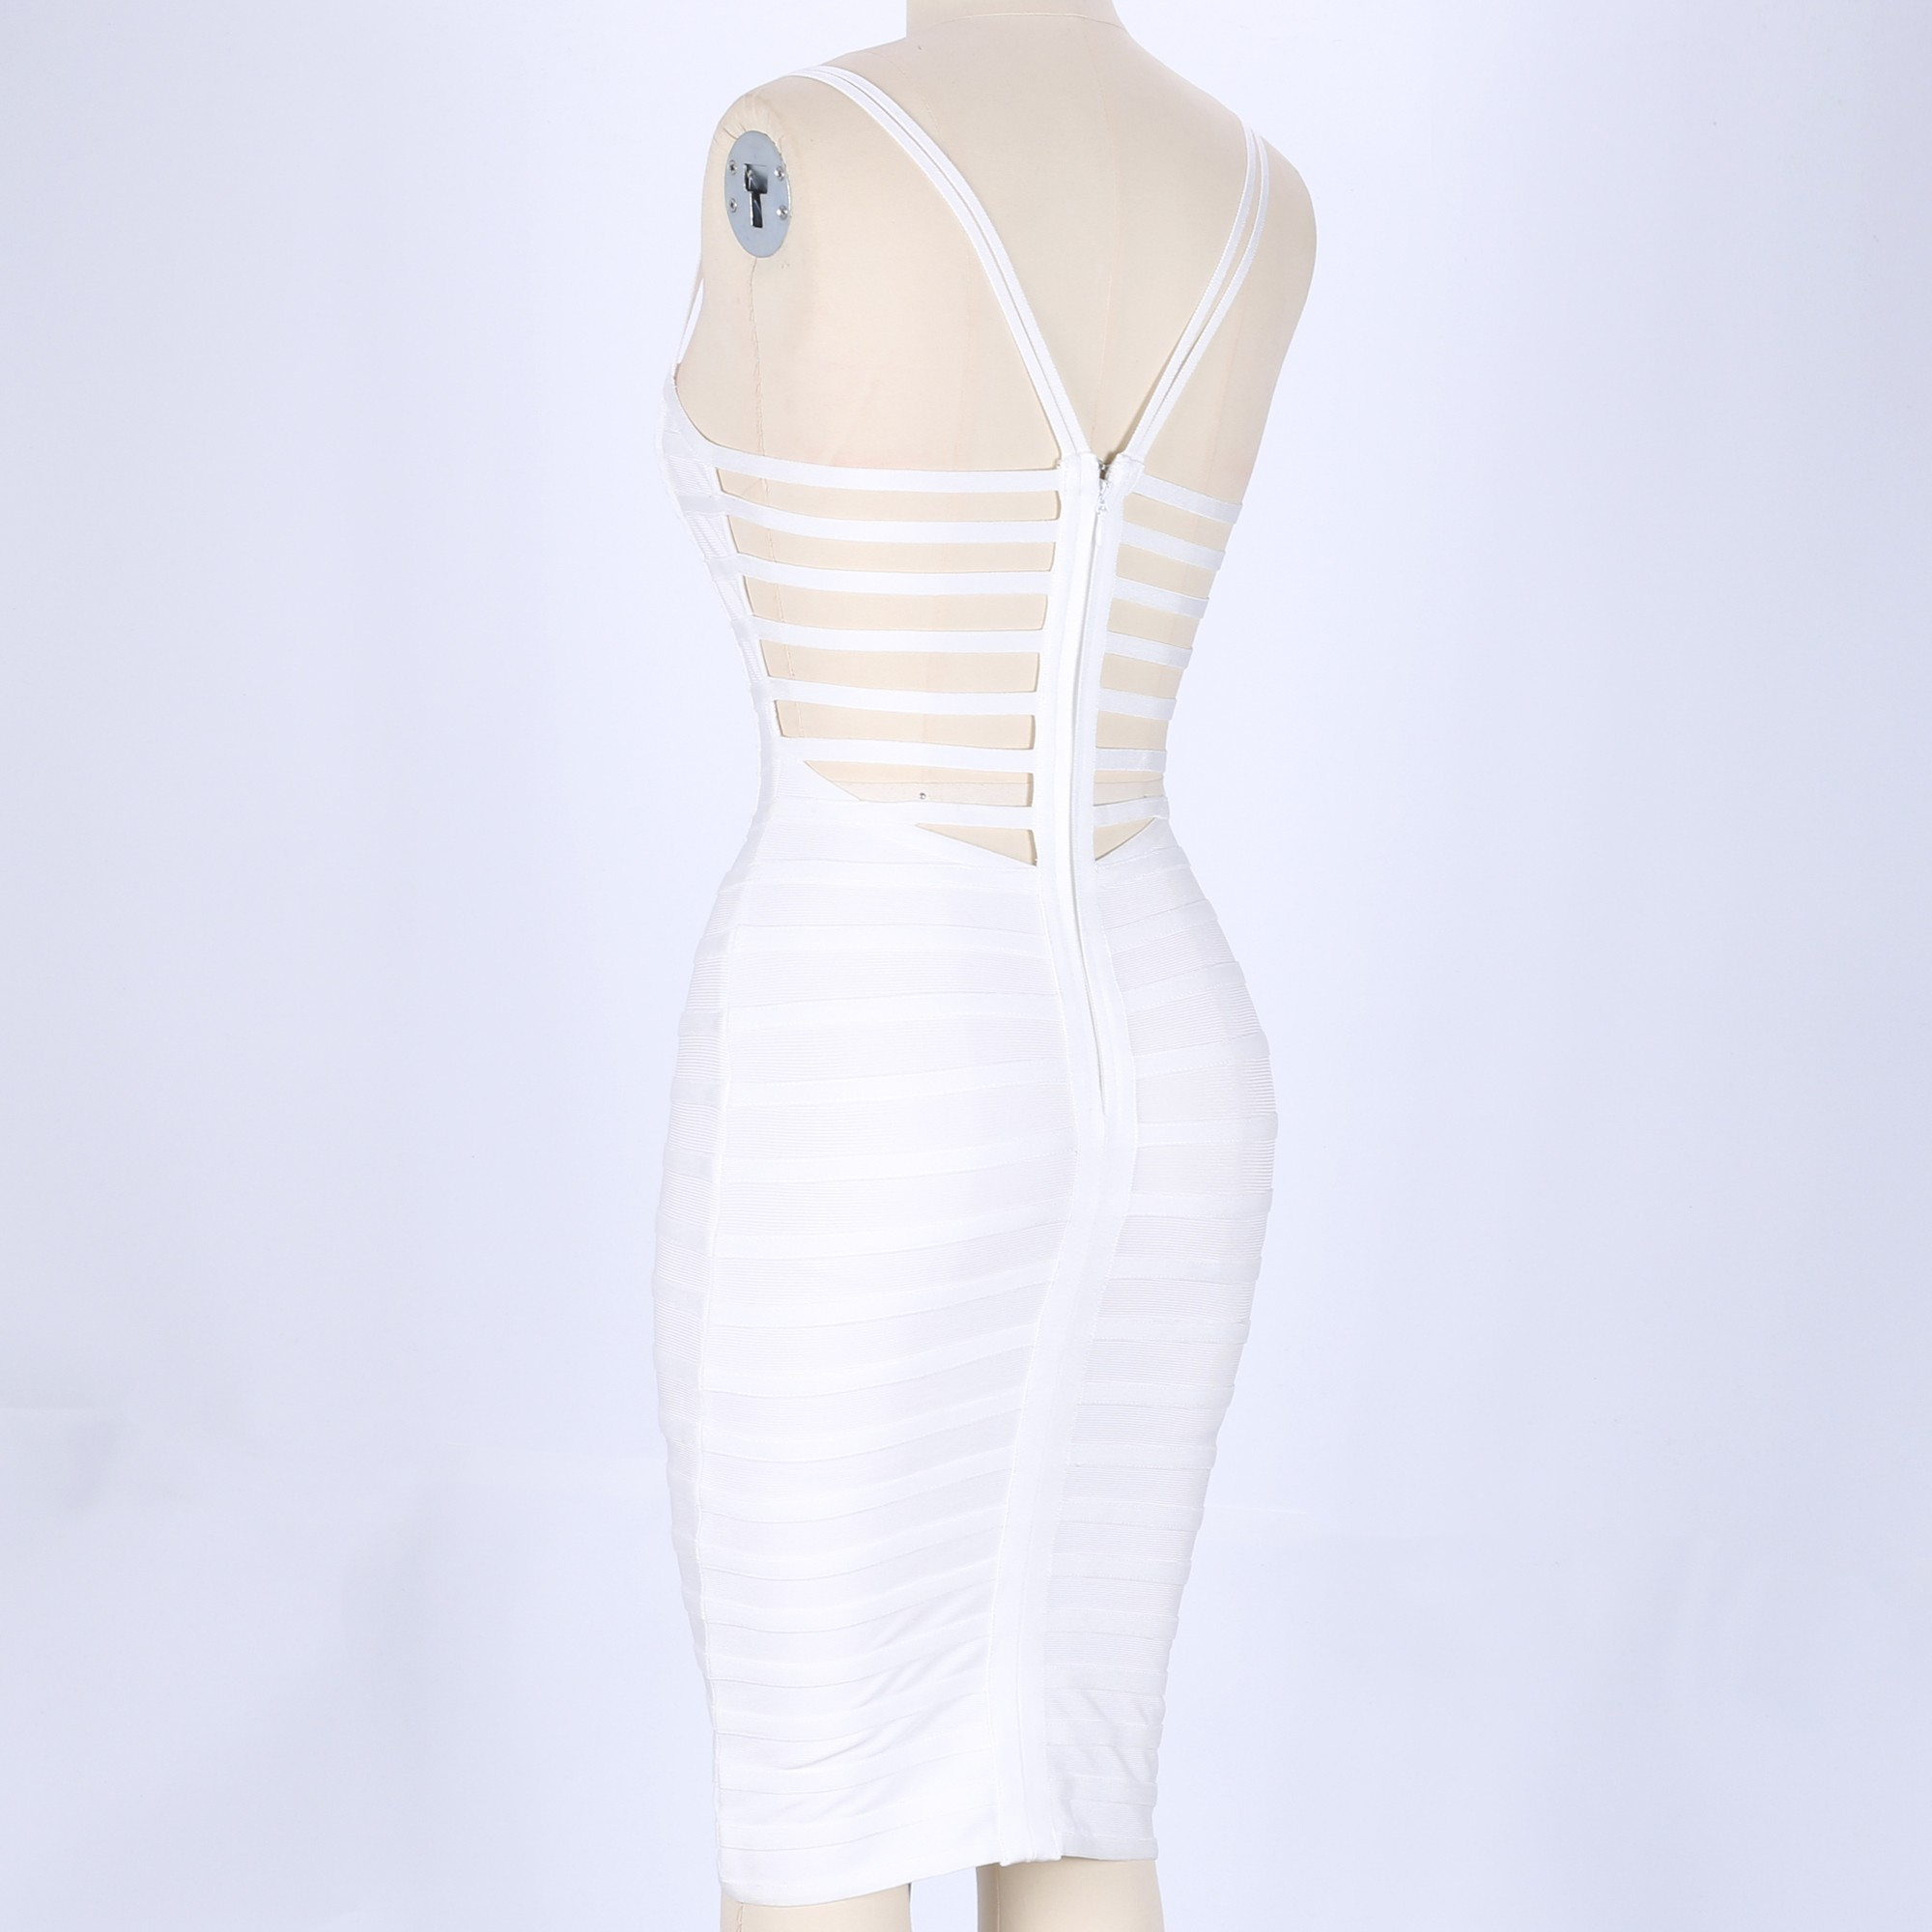 Rayon - White Strapy Sleeveless Mini Strapy Knit Party Bandage Dress HJ0369-White